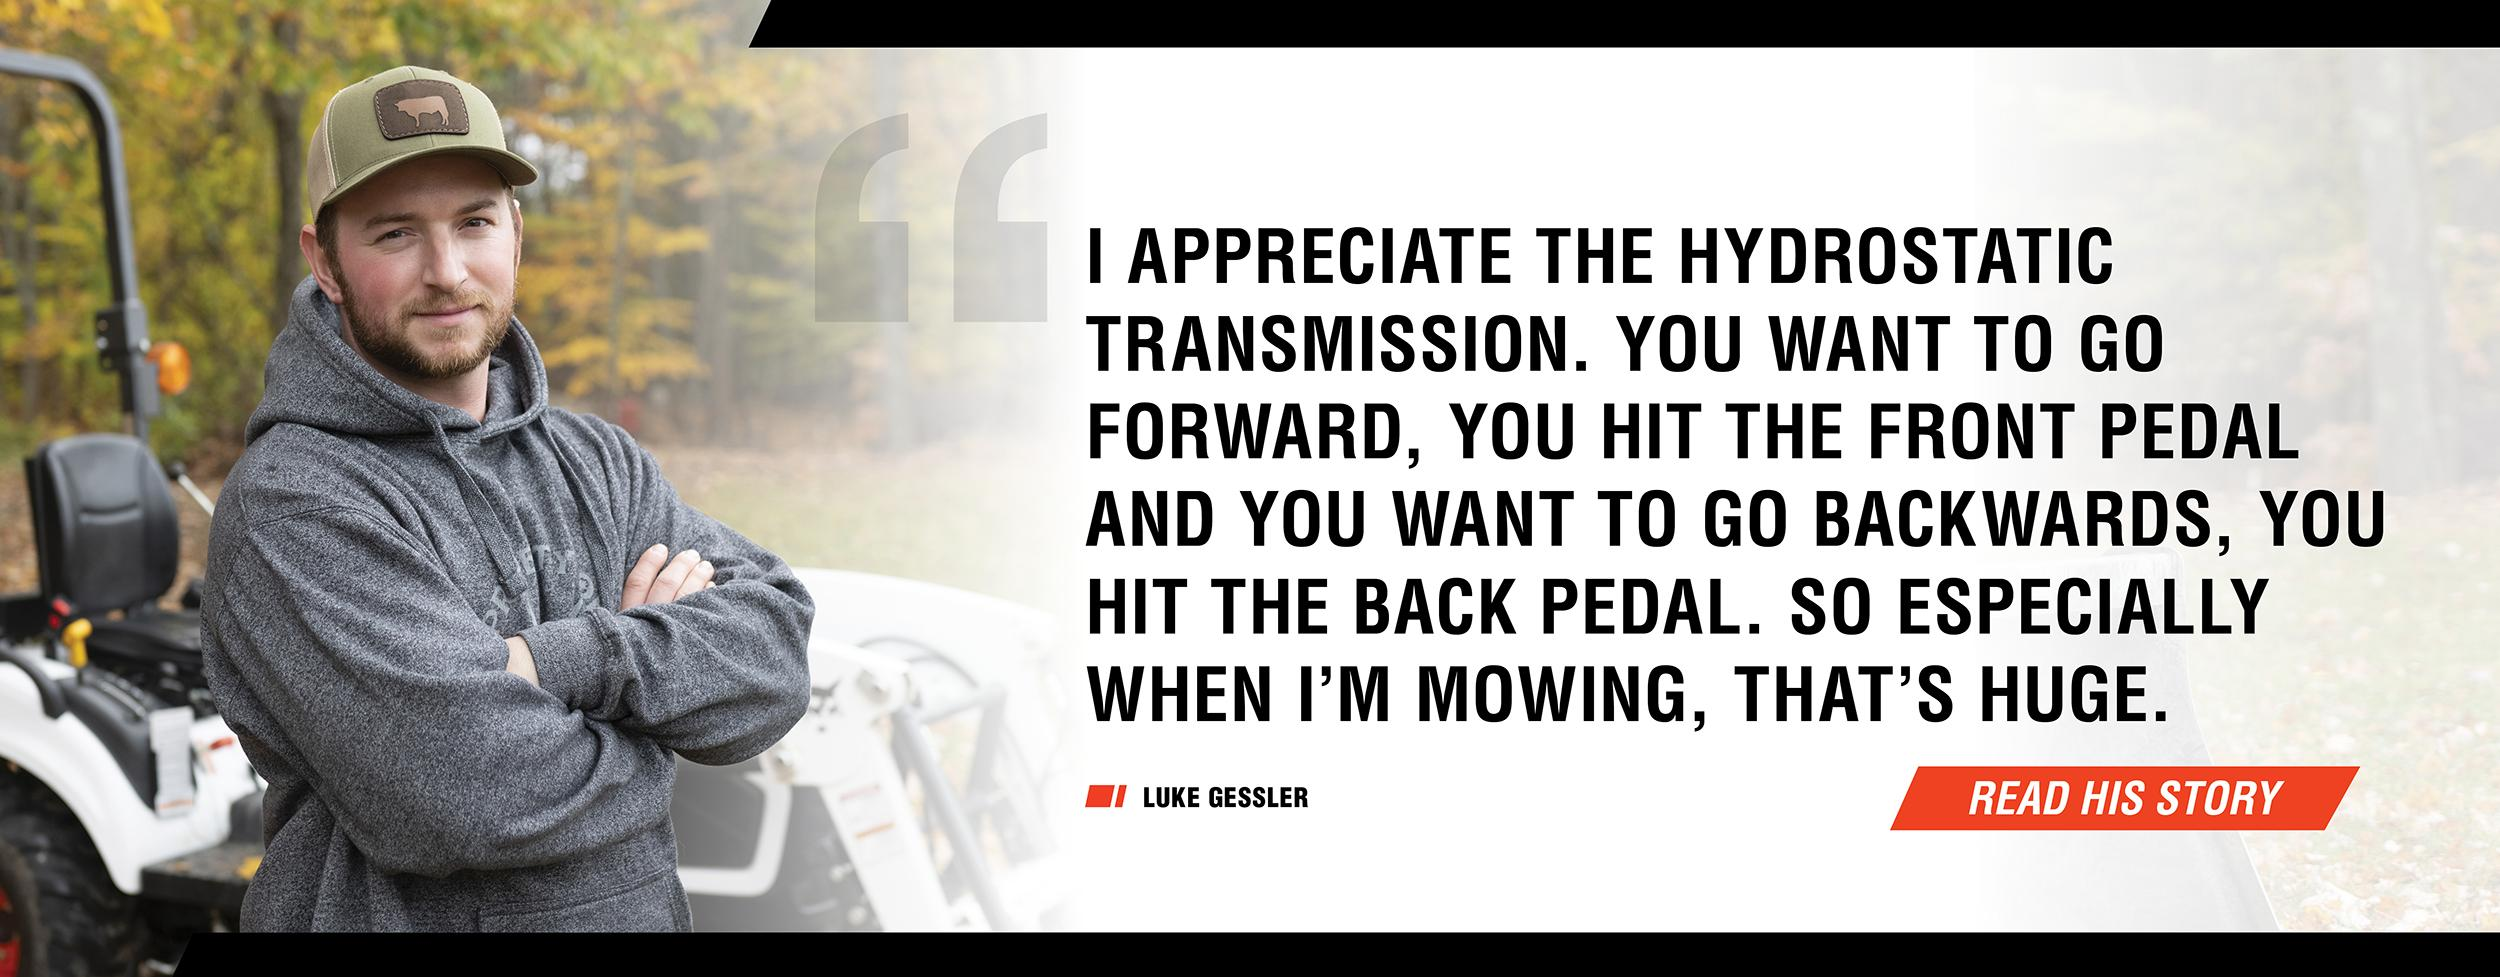 Bobcat Customer Luke Gessler In Front Of Compact Tractor With Quote - 'I appreciate the hydrostatic transmission. You want to go forward, you hit the front pedal and you want to go backwards, you hit the back pedal. So especially when I'm mowing, that's h